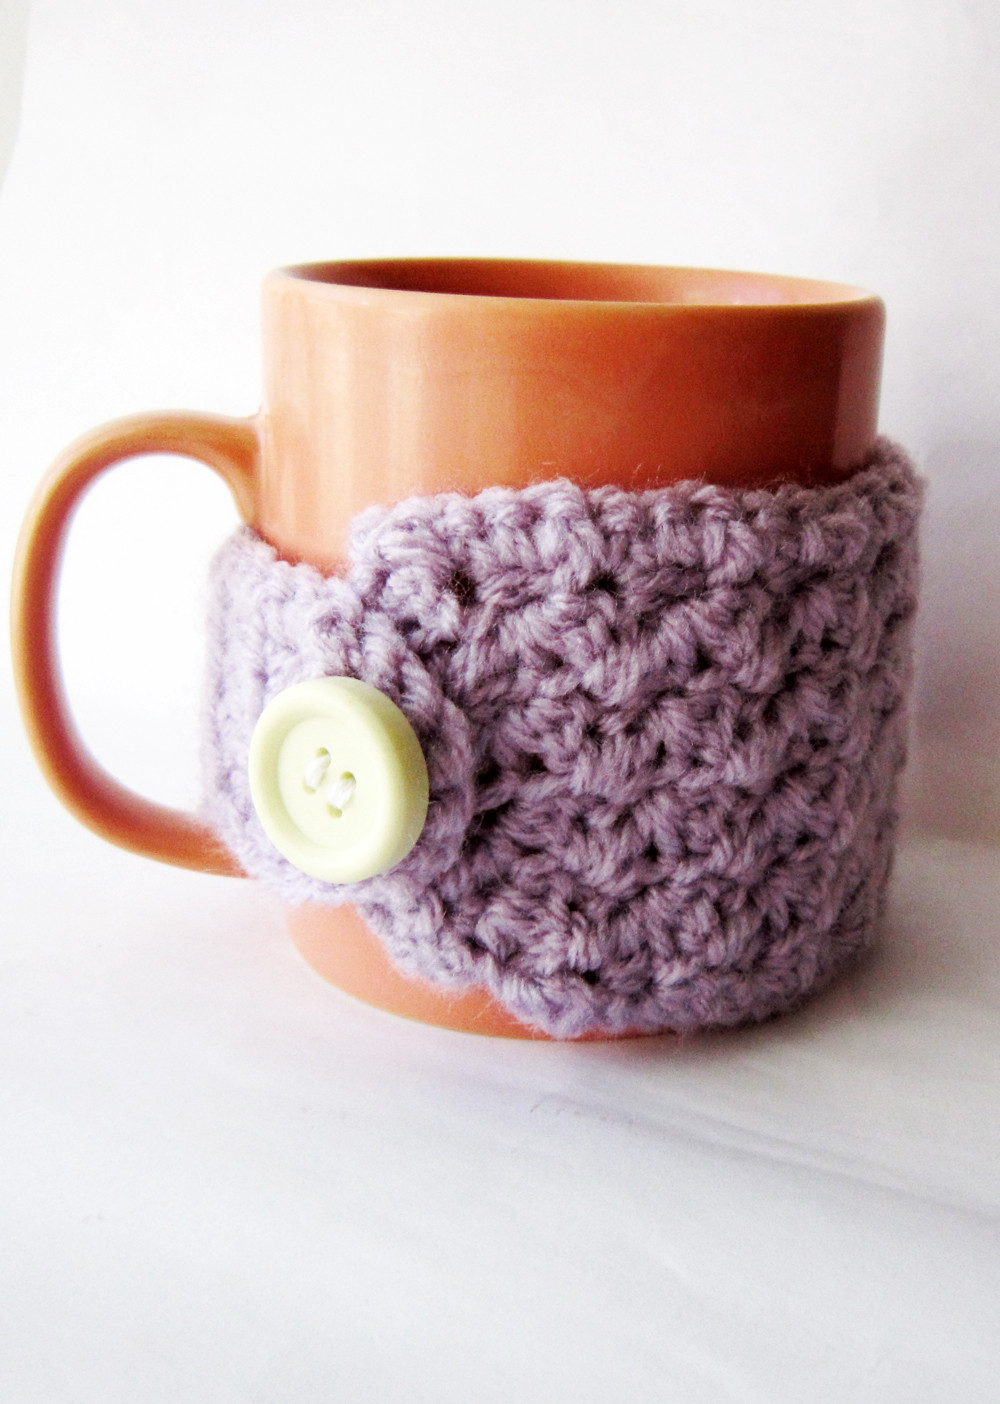 Crochet Coffee Cup Cozy Inspirational Easy Crochet Mug Cozy Free Pattern Akamatra Of Crochet Coffee Cup Cozy Unique Mrsbrits Ribbed Coffee Cozy Crochet Pattern